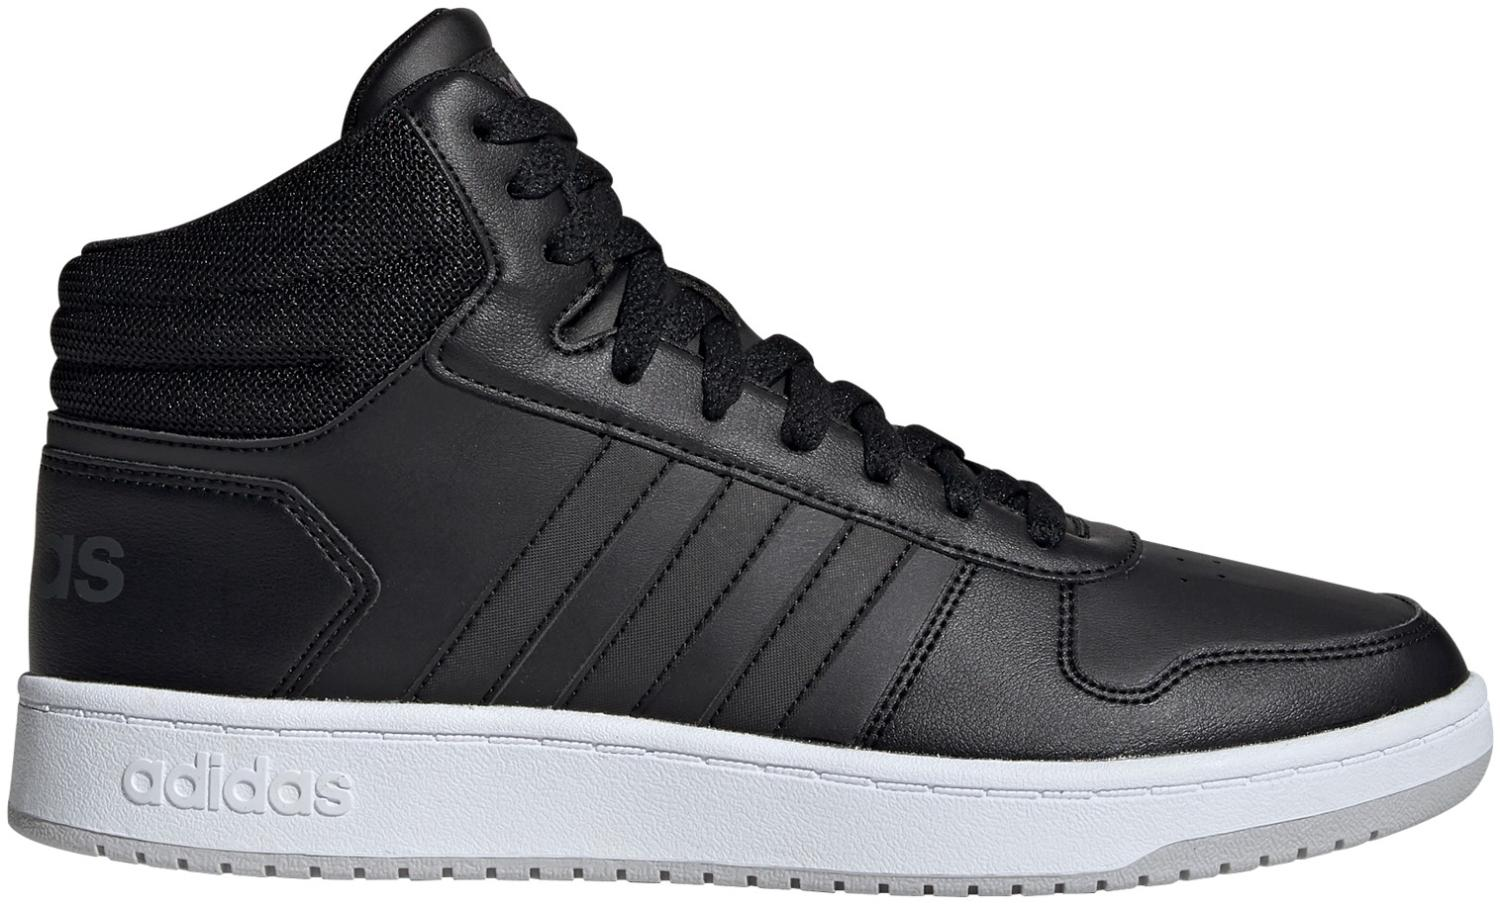 Obuv Adidas Performance Hoops 2.0 MID,44